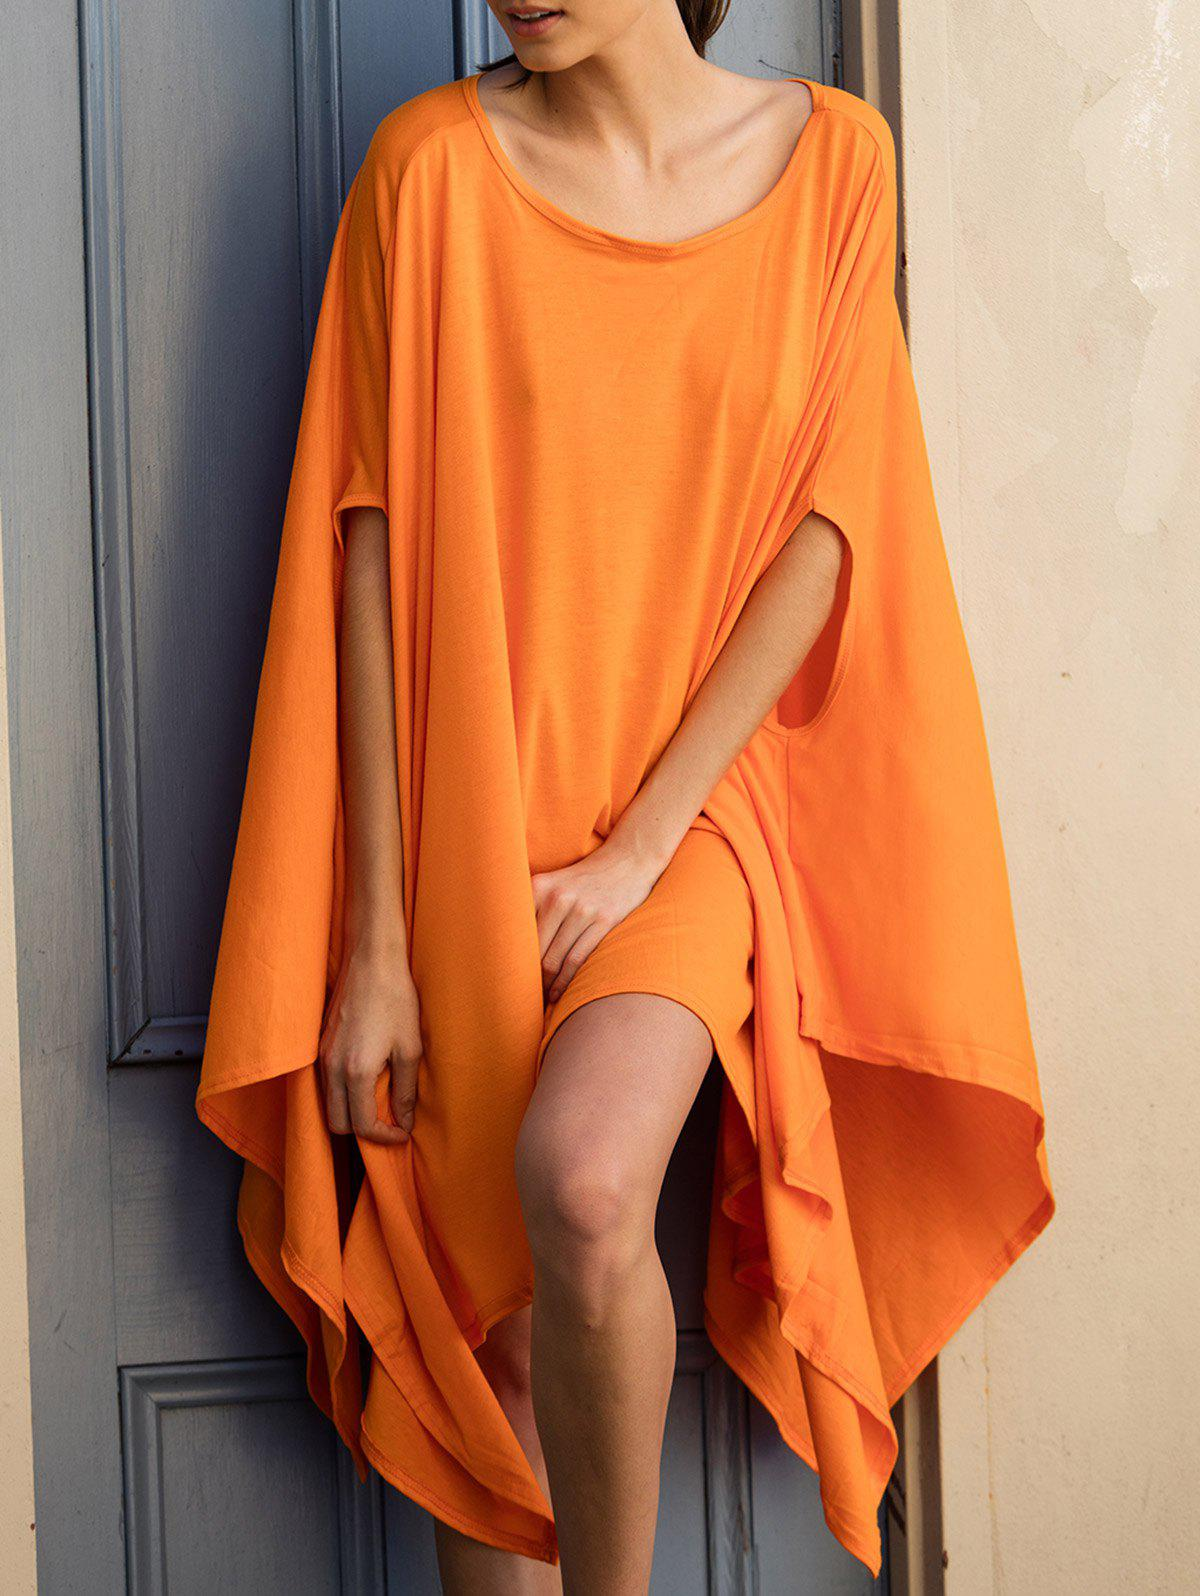 Charming Pure Color Batwing Sleeve Asymmetric Tops For Women - ORANGE S